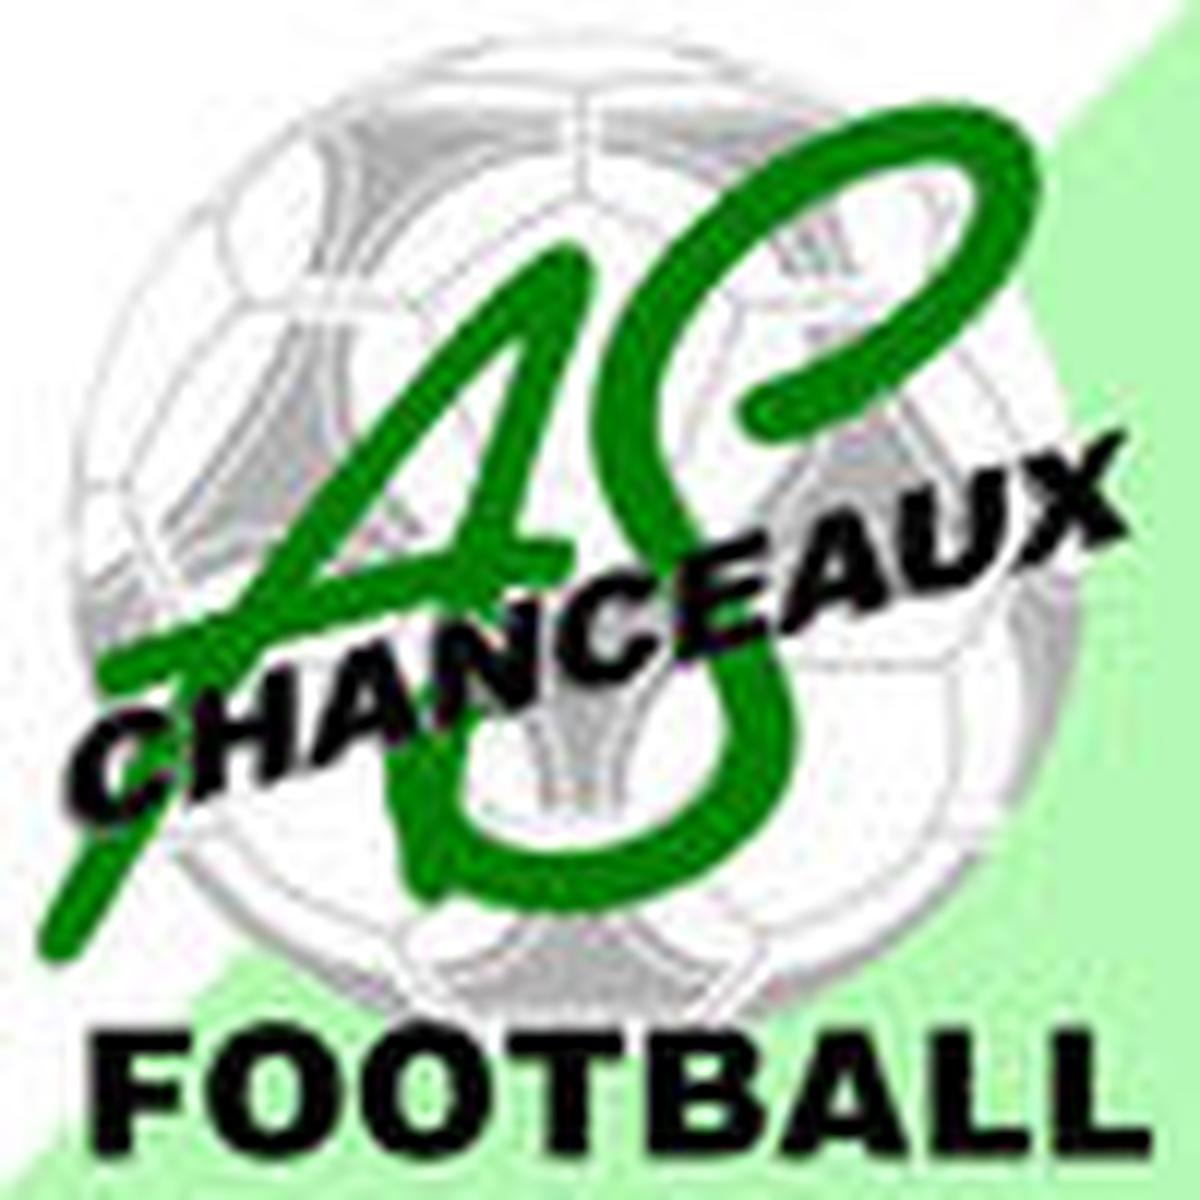 U13_CHANCEAUX/CHOISILLES AS